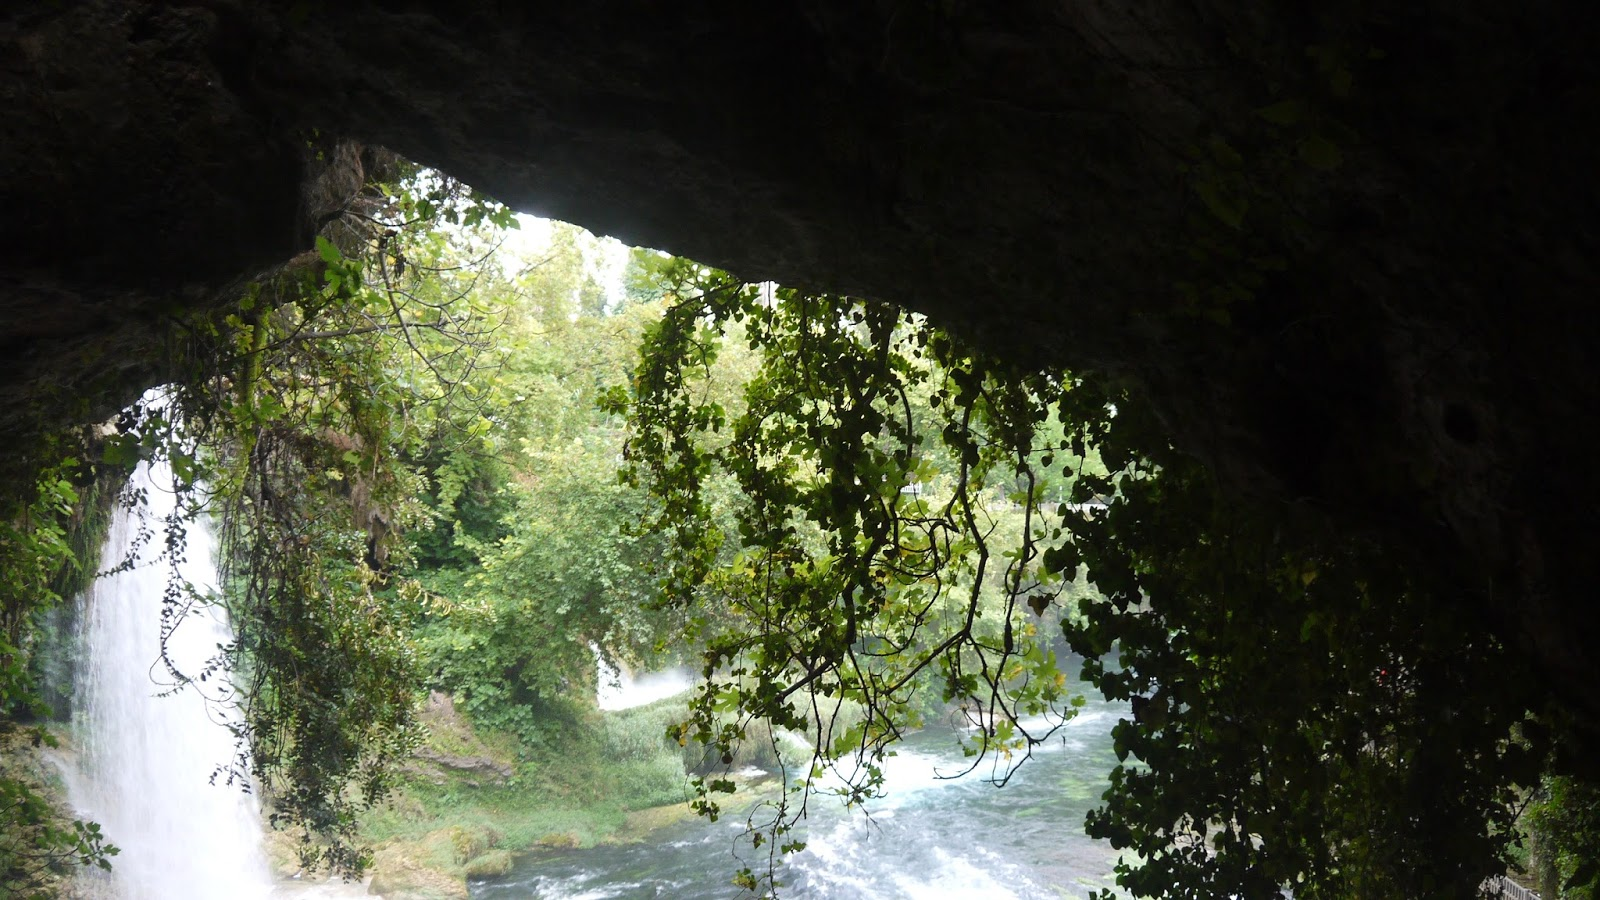 La Mode D'Emm Antalya, Turkey Upper Lower Duden Waterfall